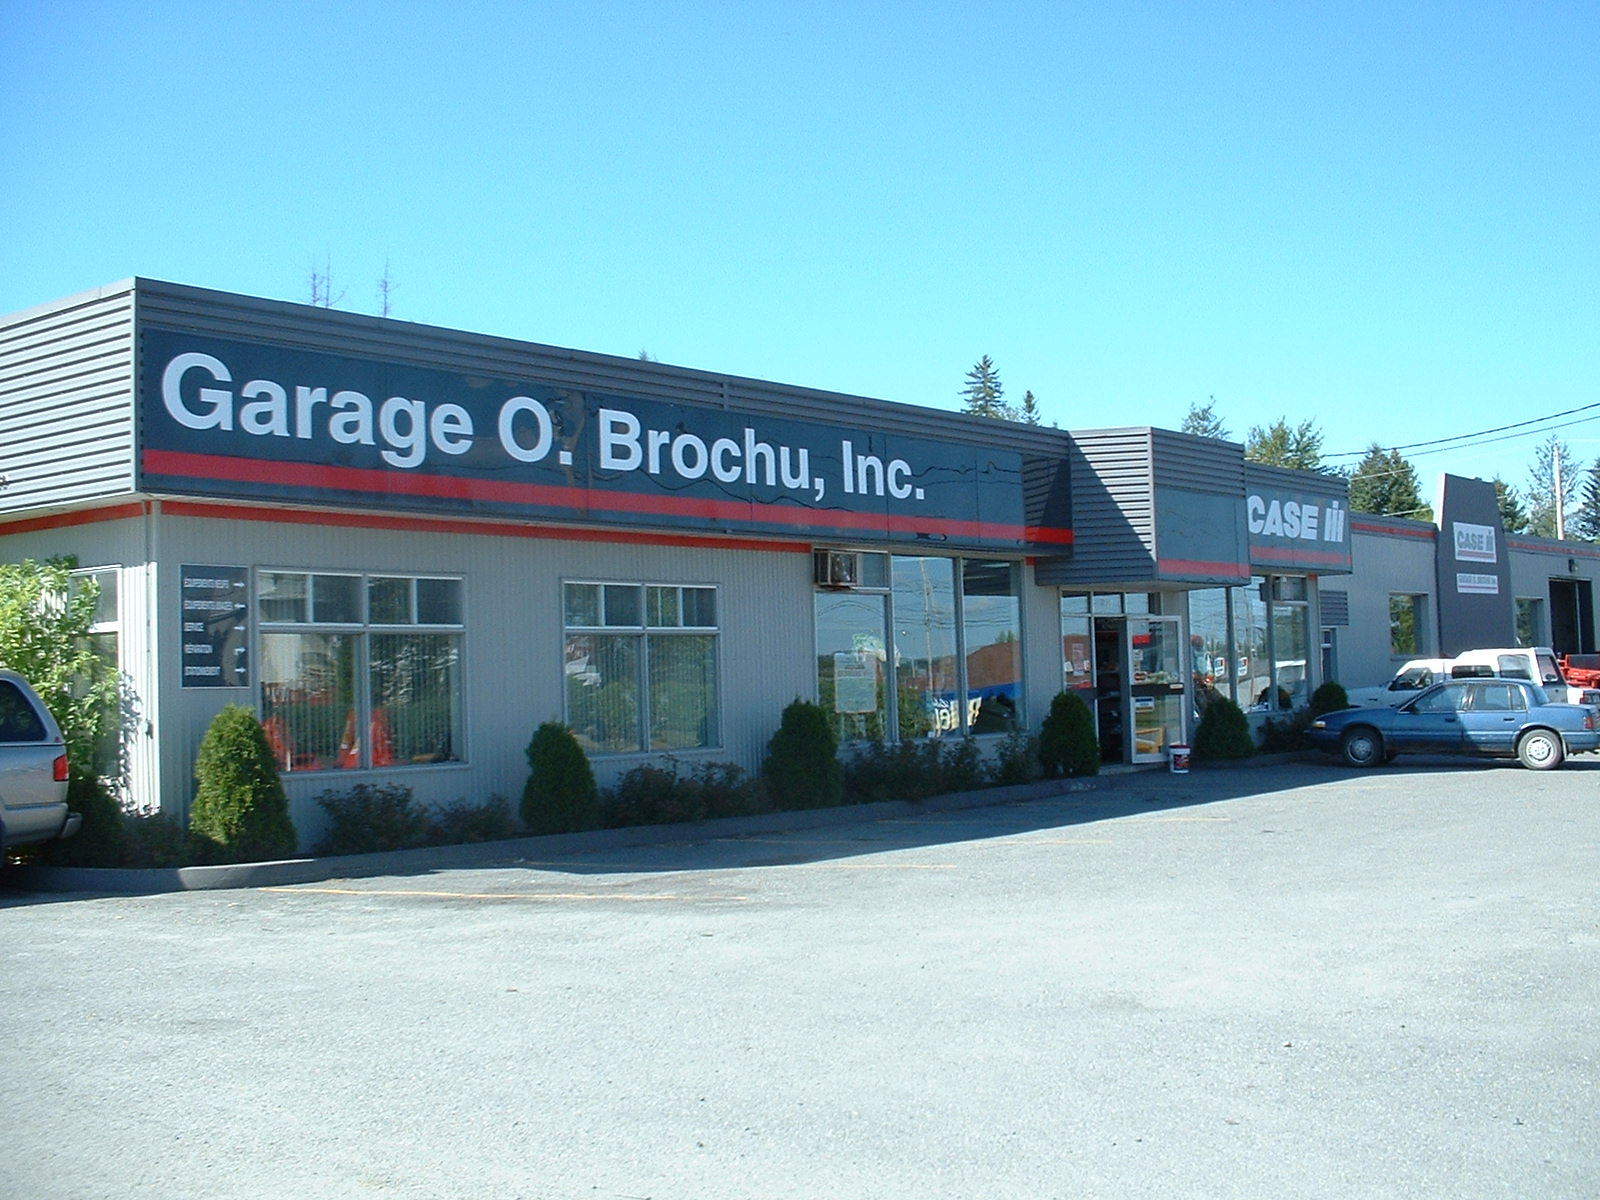 Garage Oscar Brochu